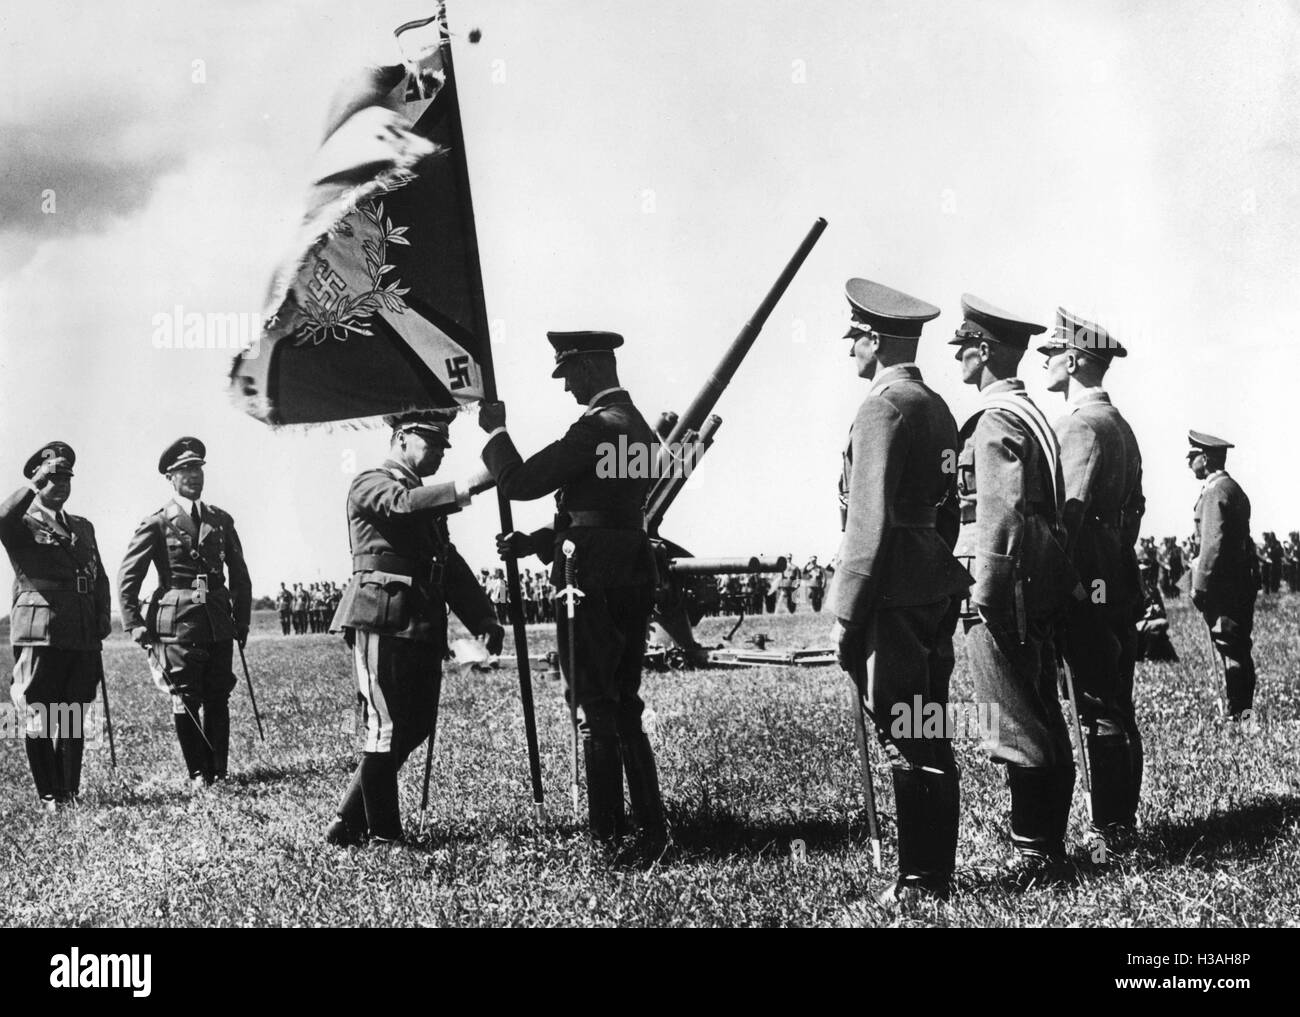 Handover of flags to Luftwaffe units in East Prussia, 1936 - Stock Image